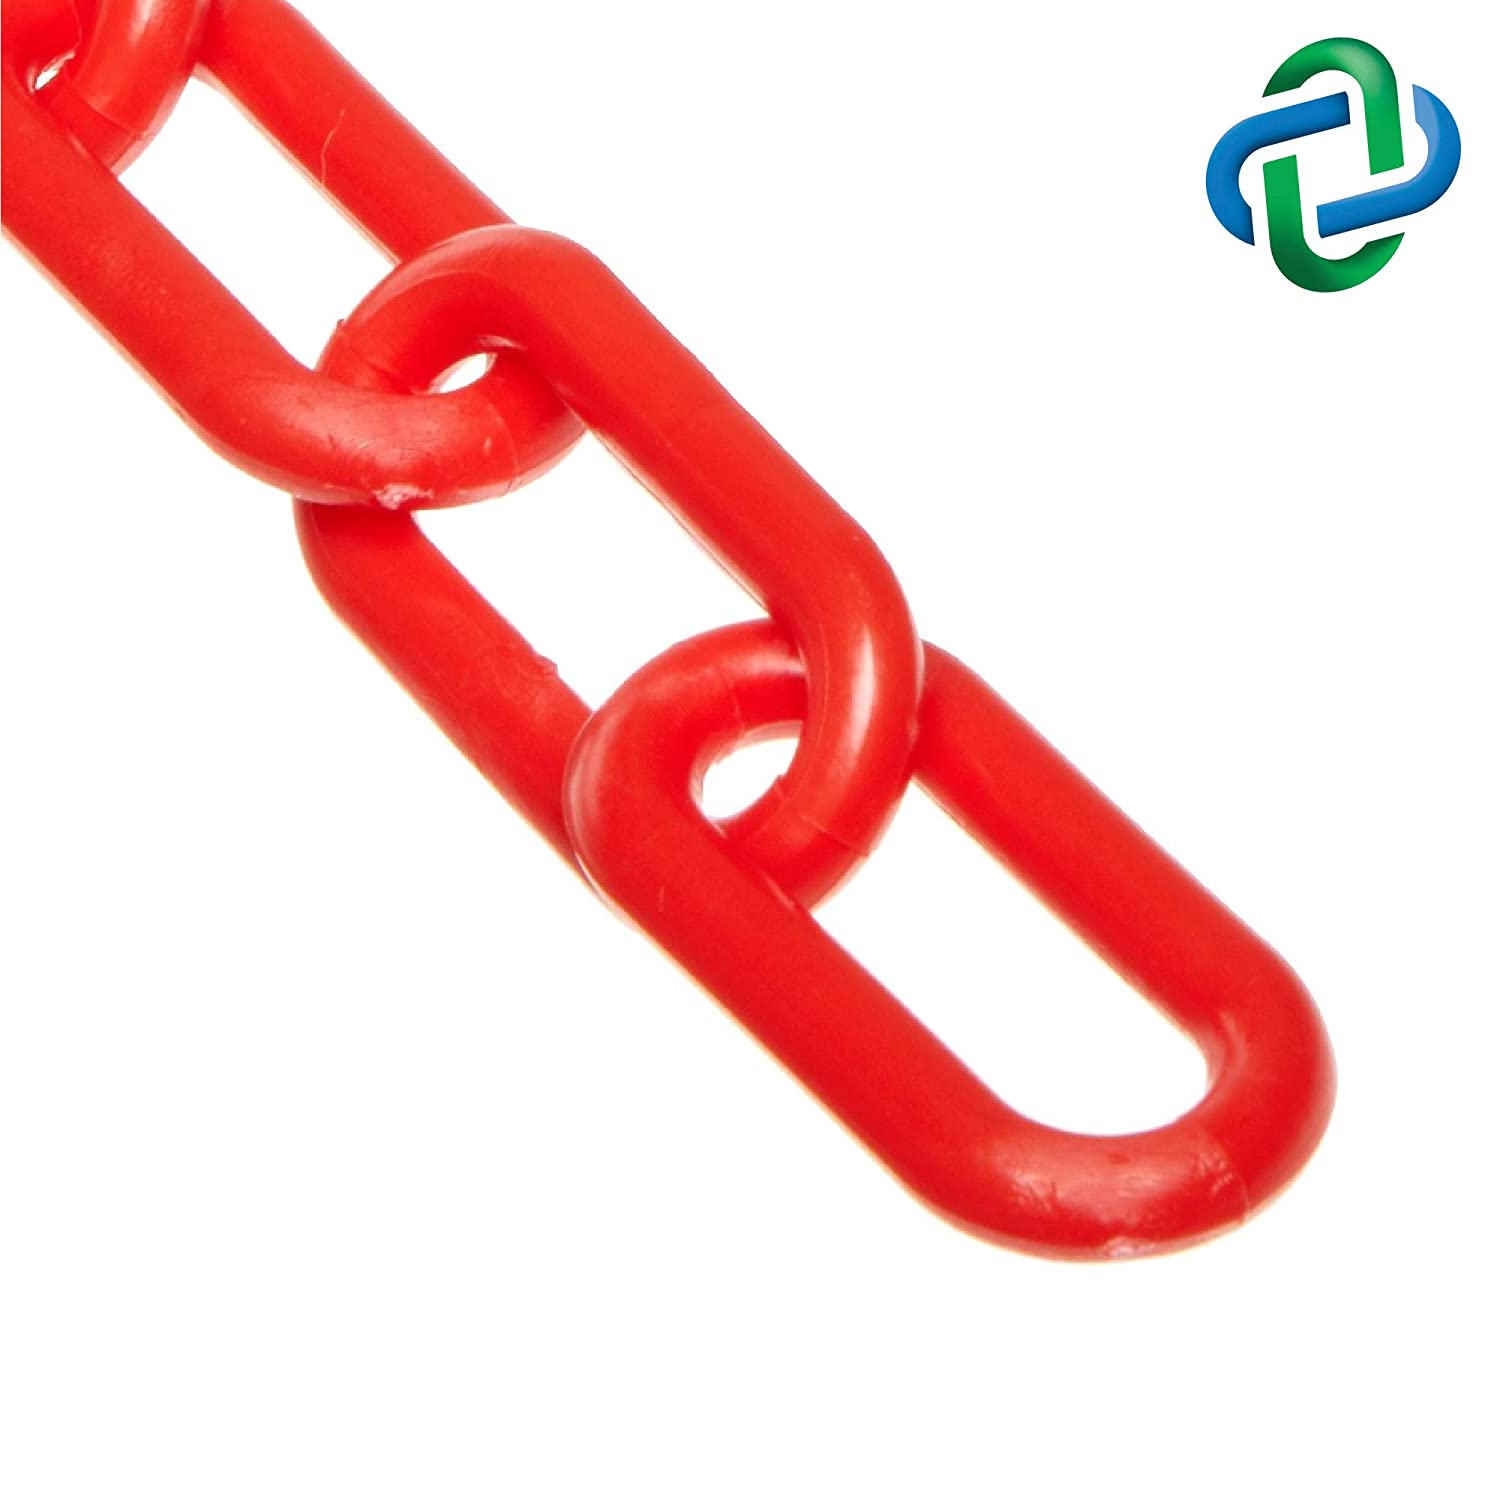 2-Inch Link Diameter 25-Foot Length Chain Heavy Duty Plastic Barrier Chain Mr 51005-25 Red